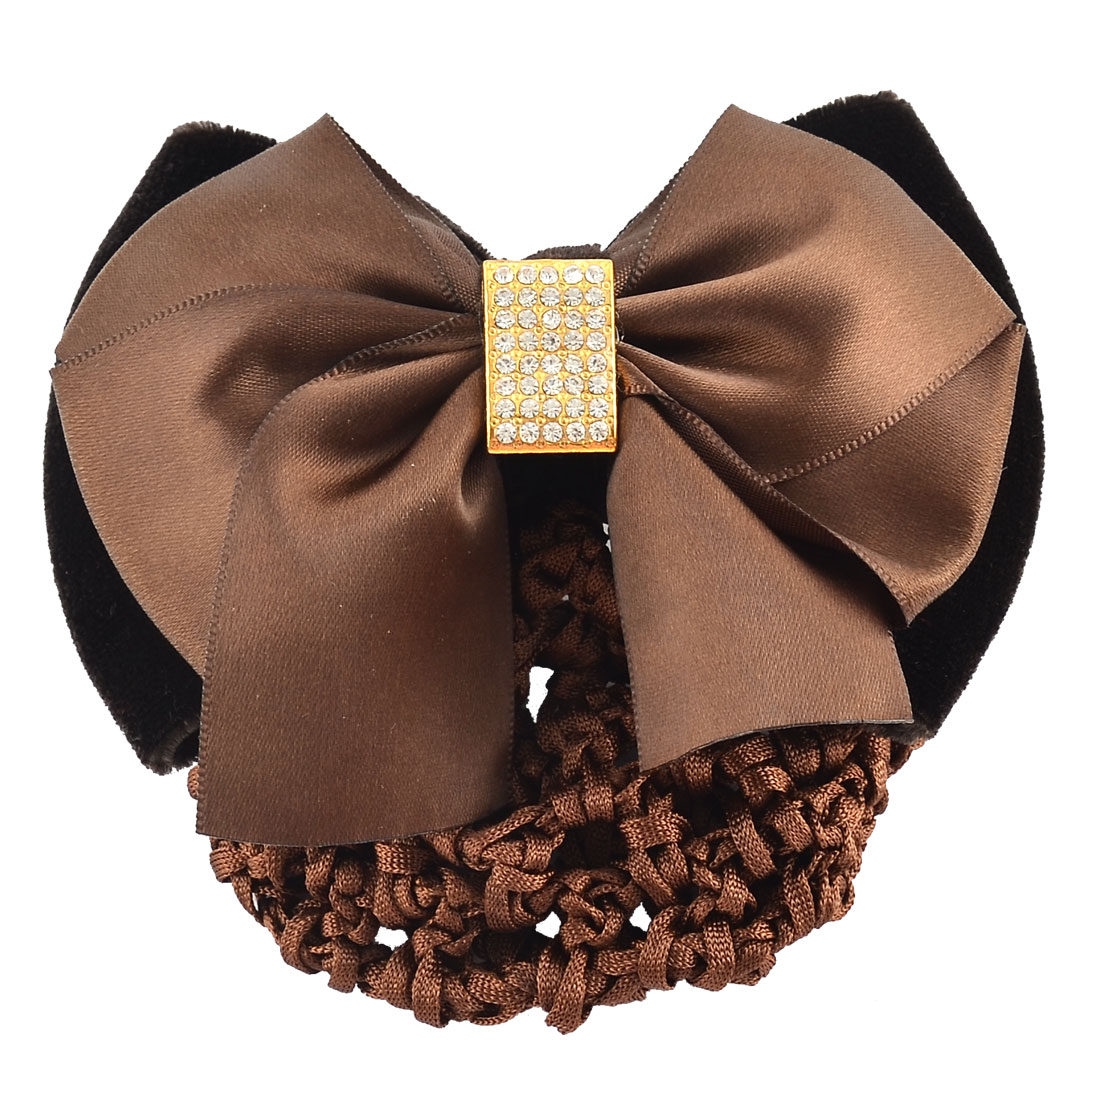 Women Hairstyle Bowknot Decor Snood Net Holder Barrette Hair Clip Hairnet Brown